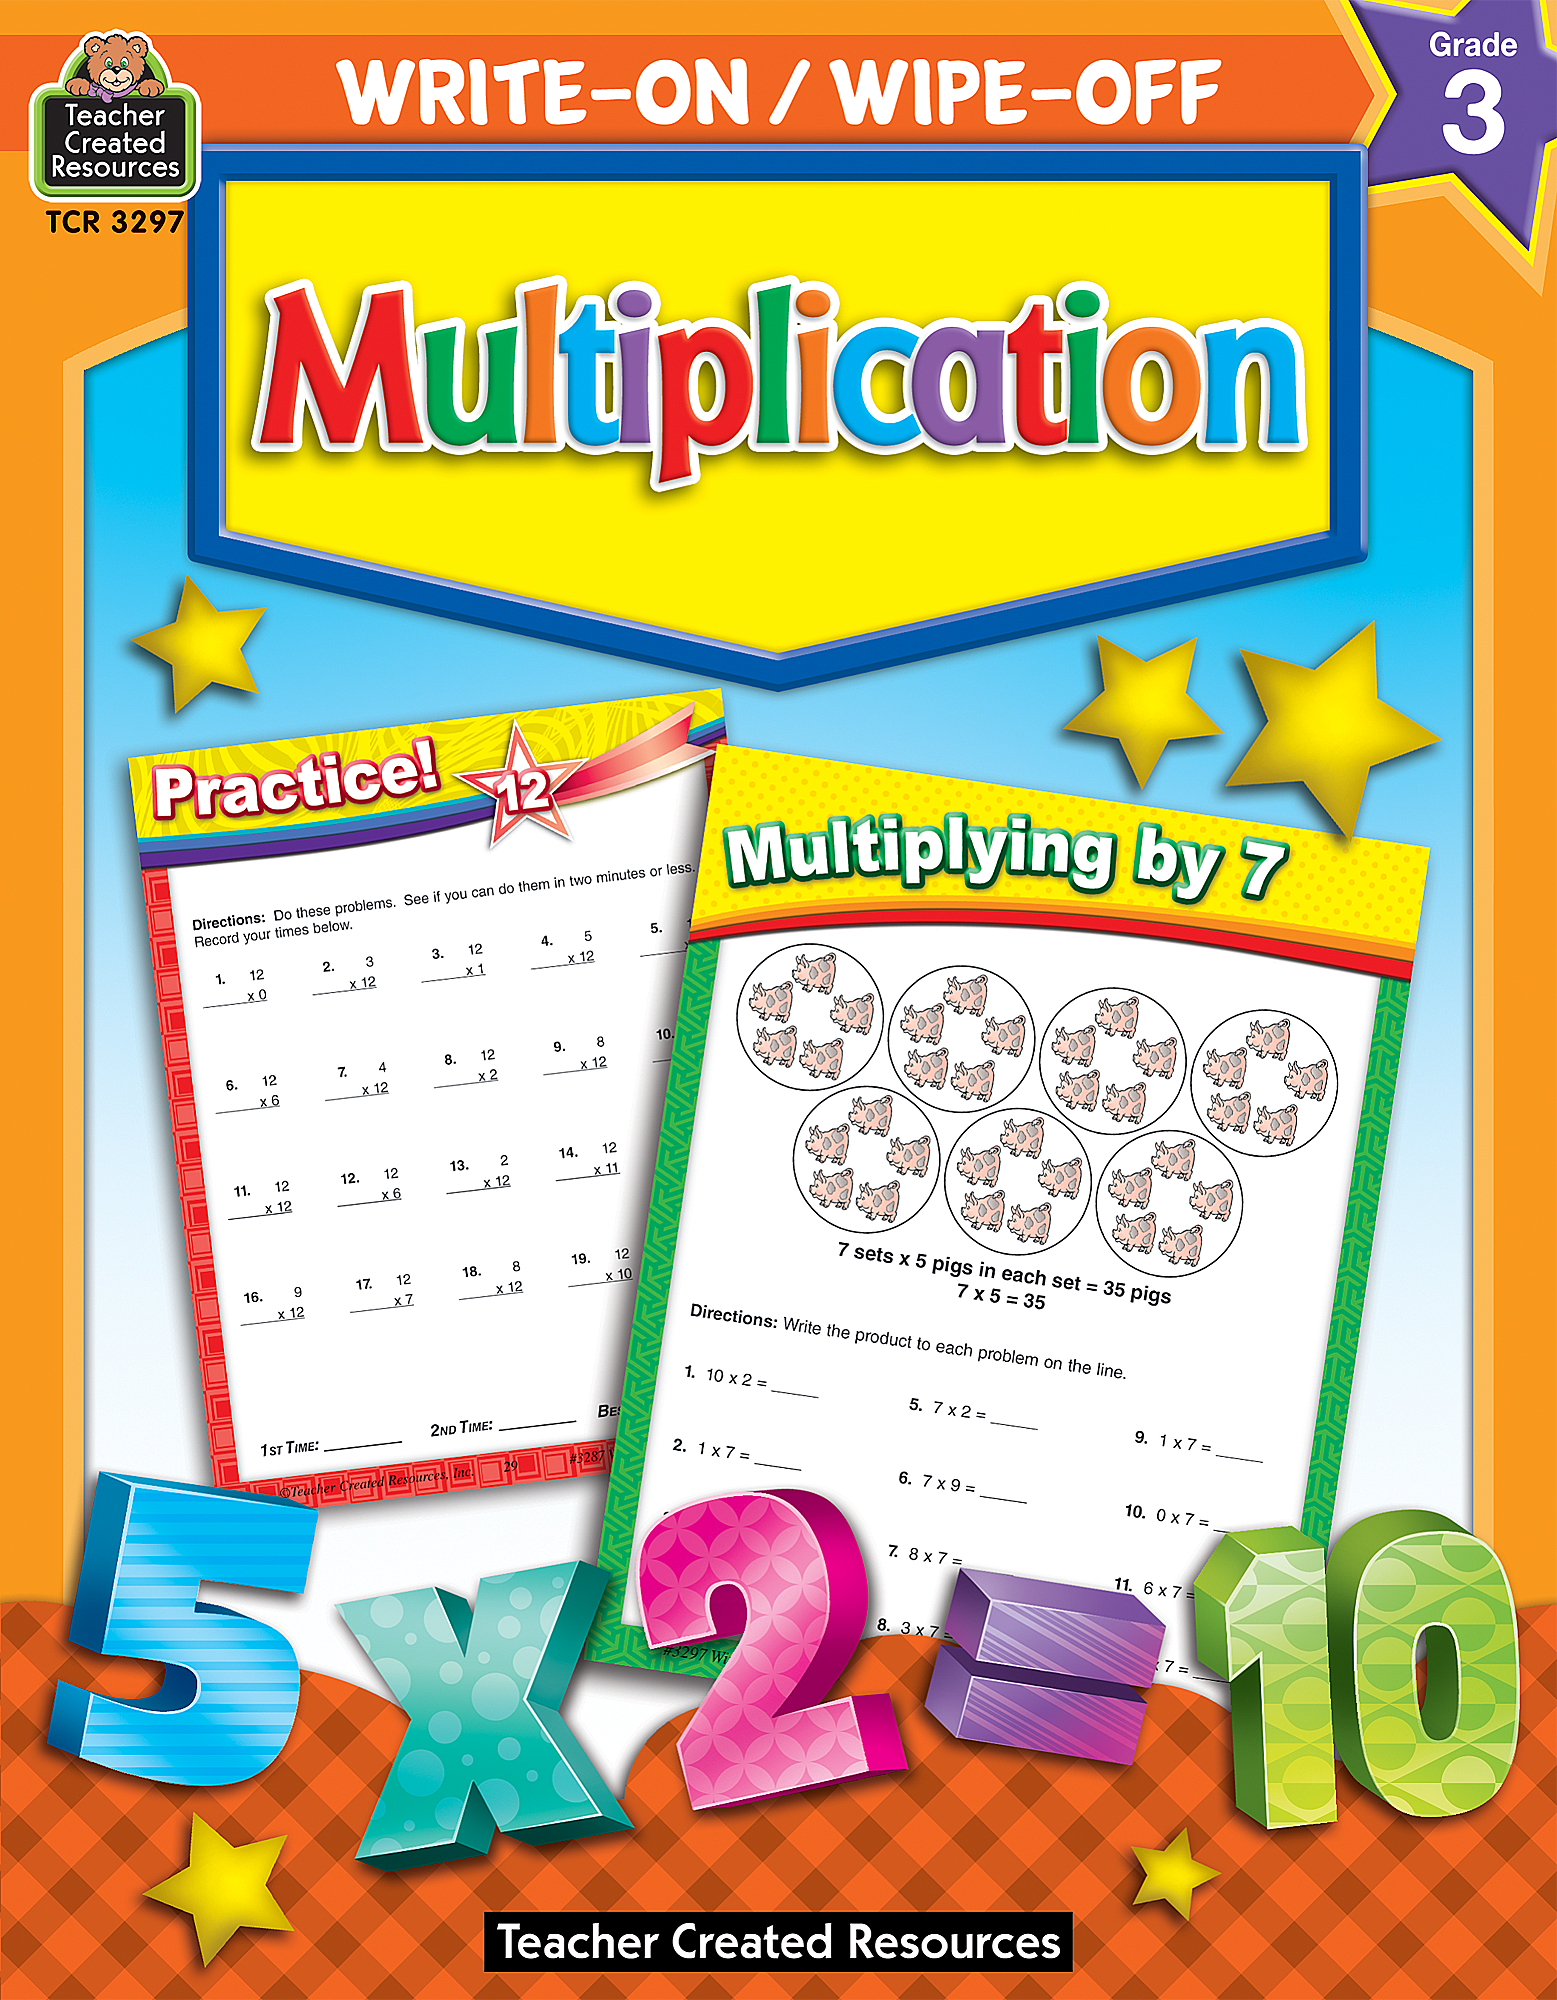 Write-On/Wipe-Off: Multiplication